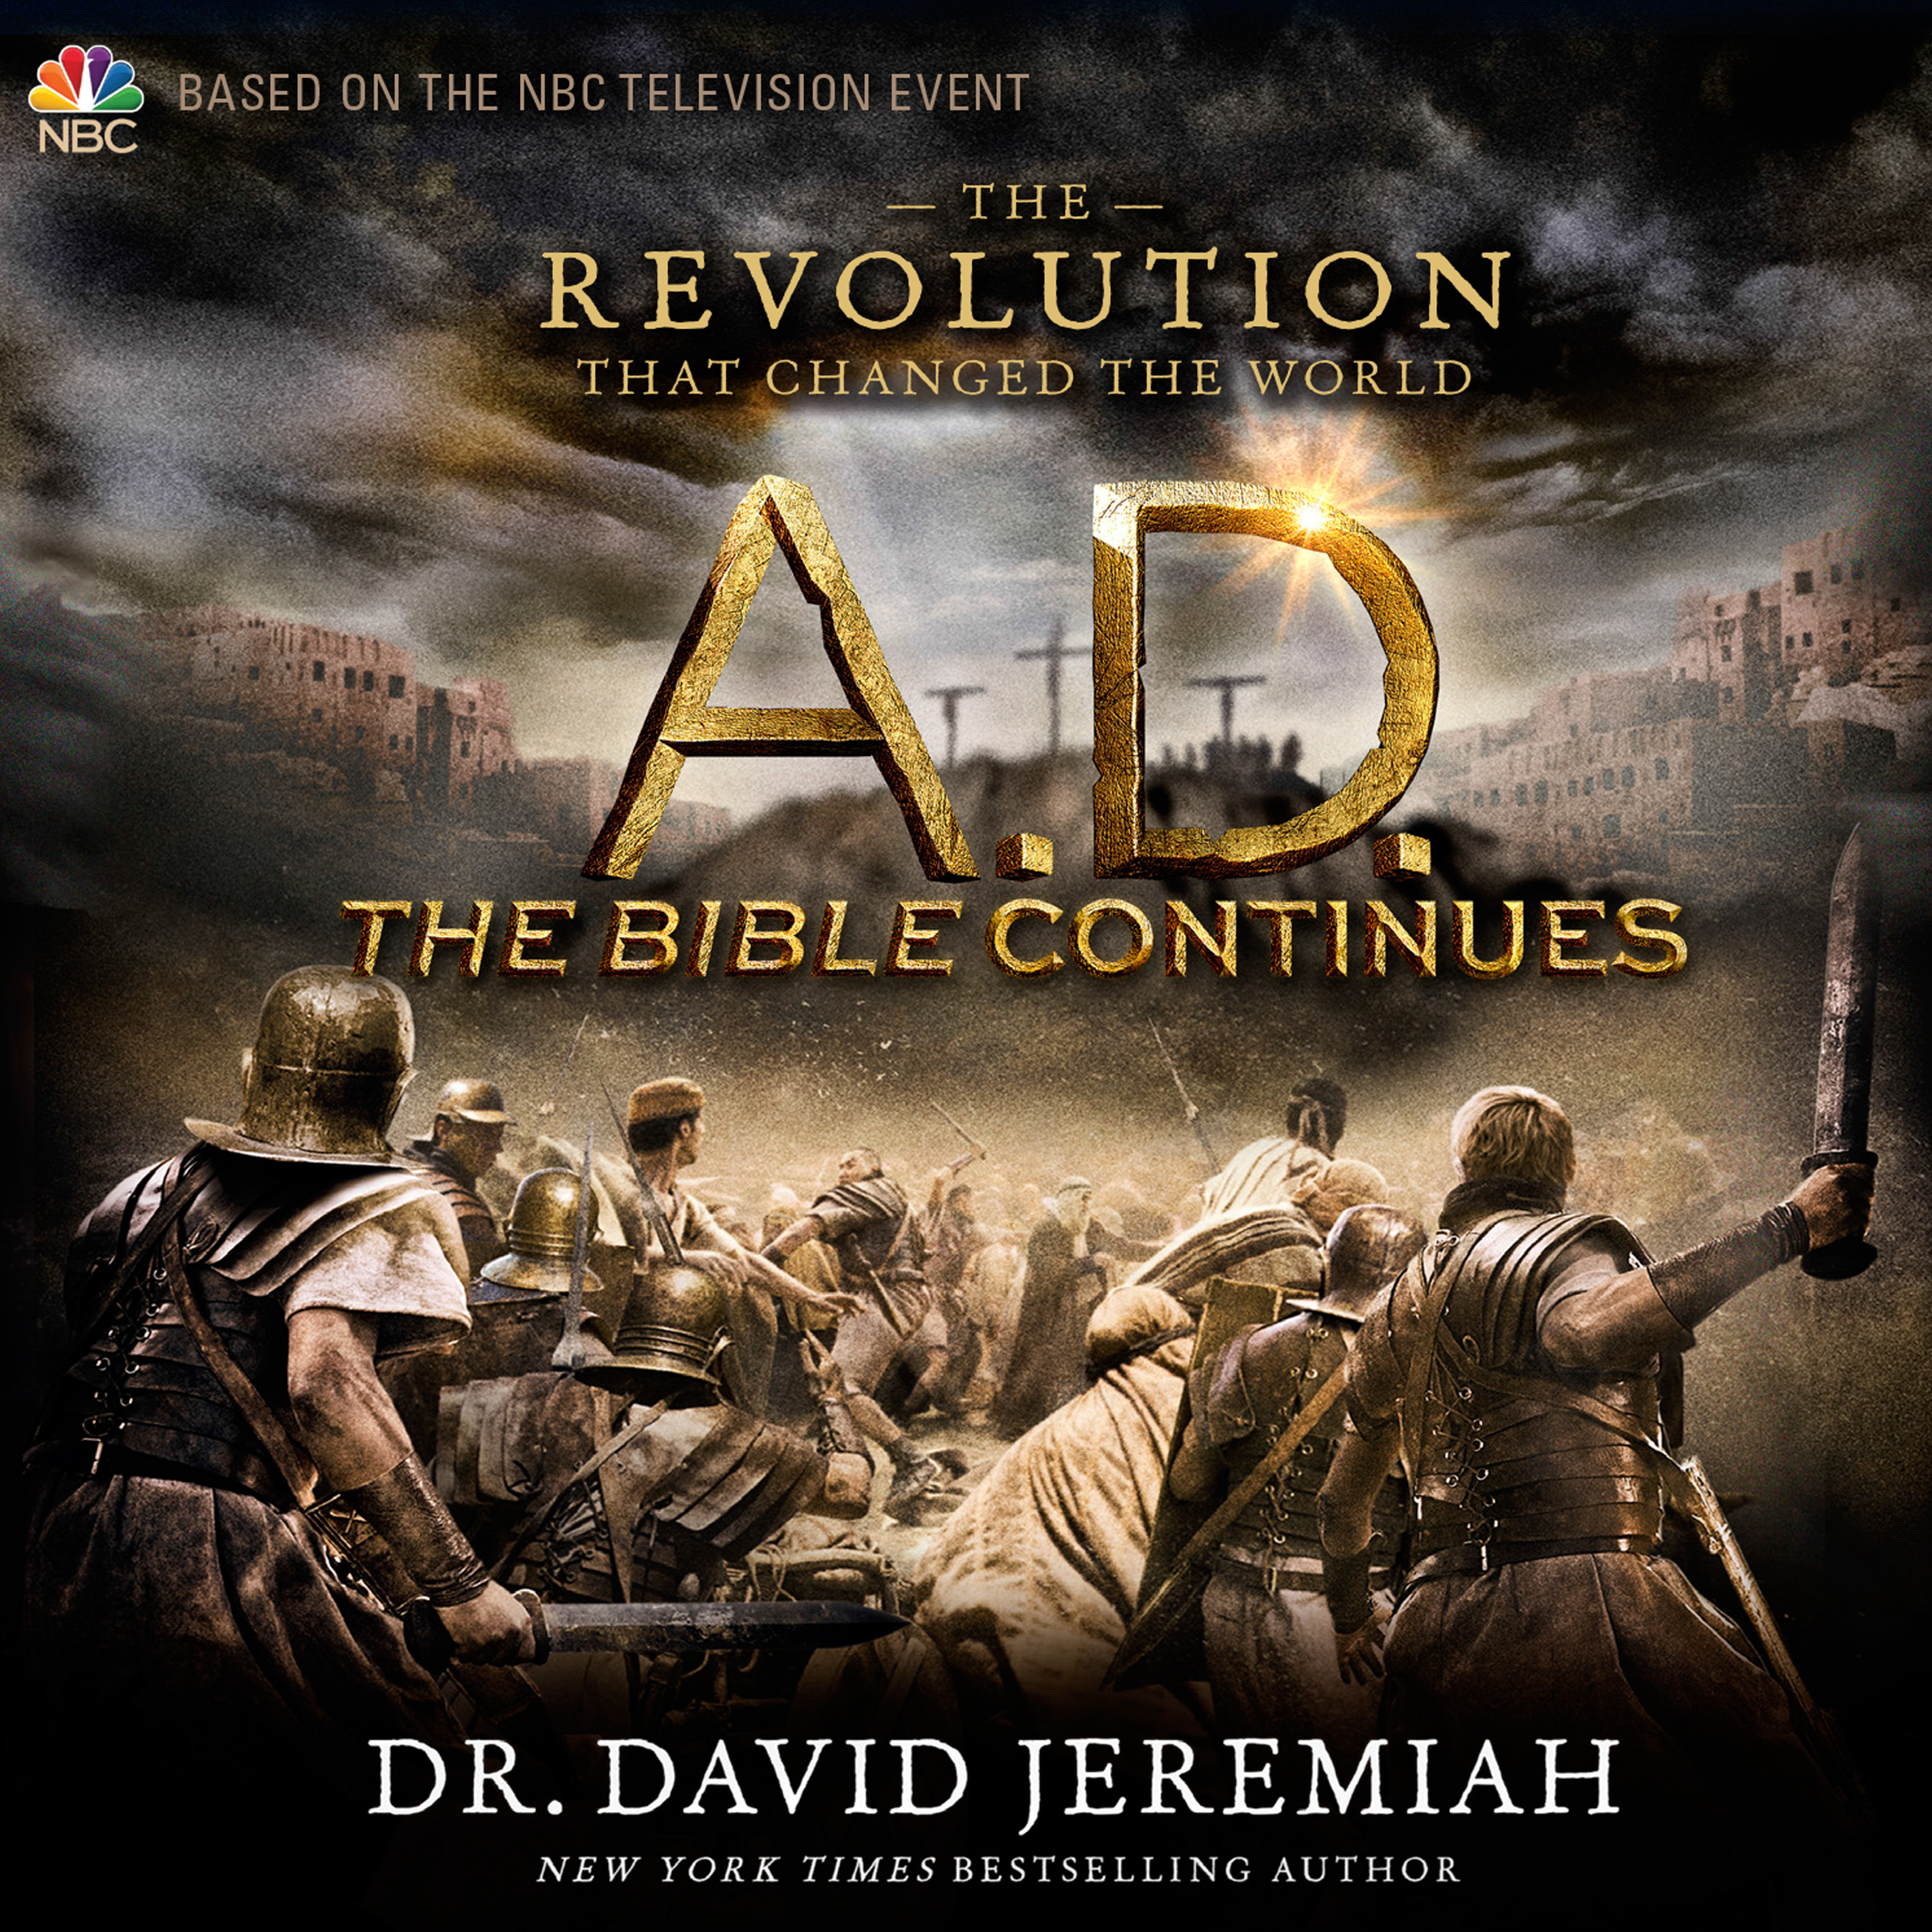 Printable AD: The Bible Continues: The Revolution That Changed the World Audiobook Cover Art